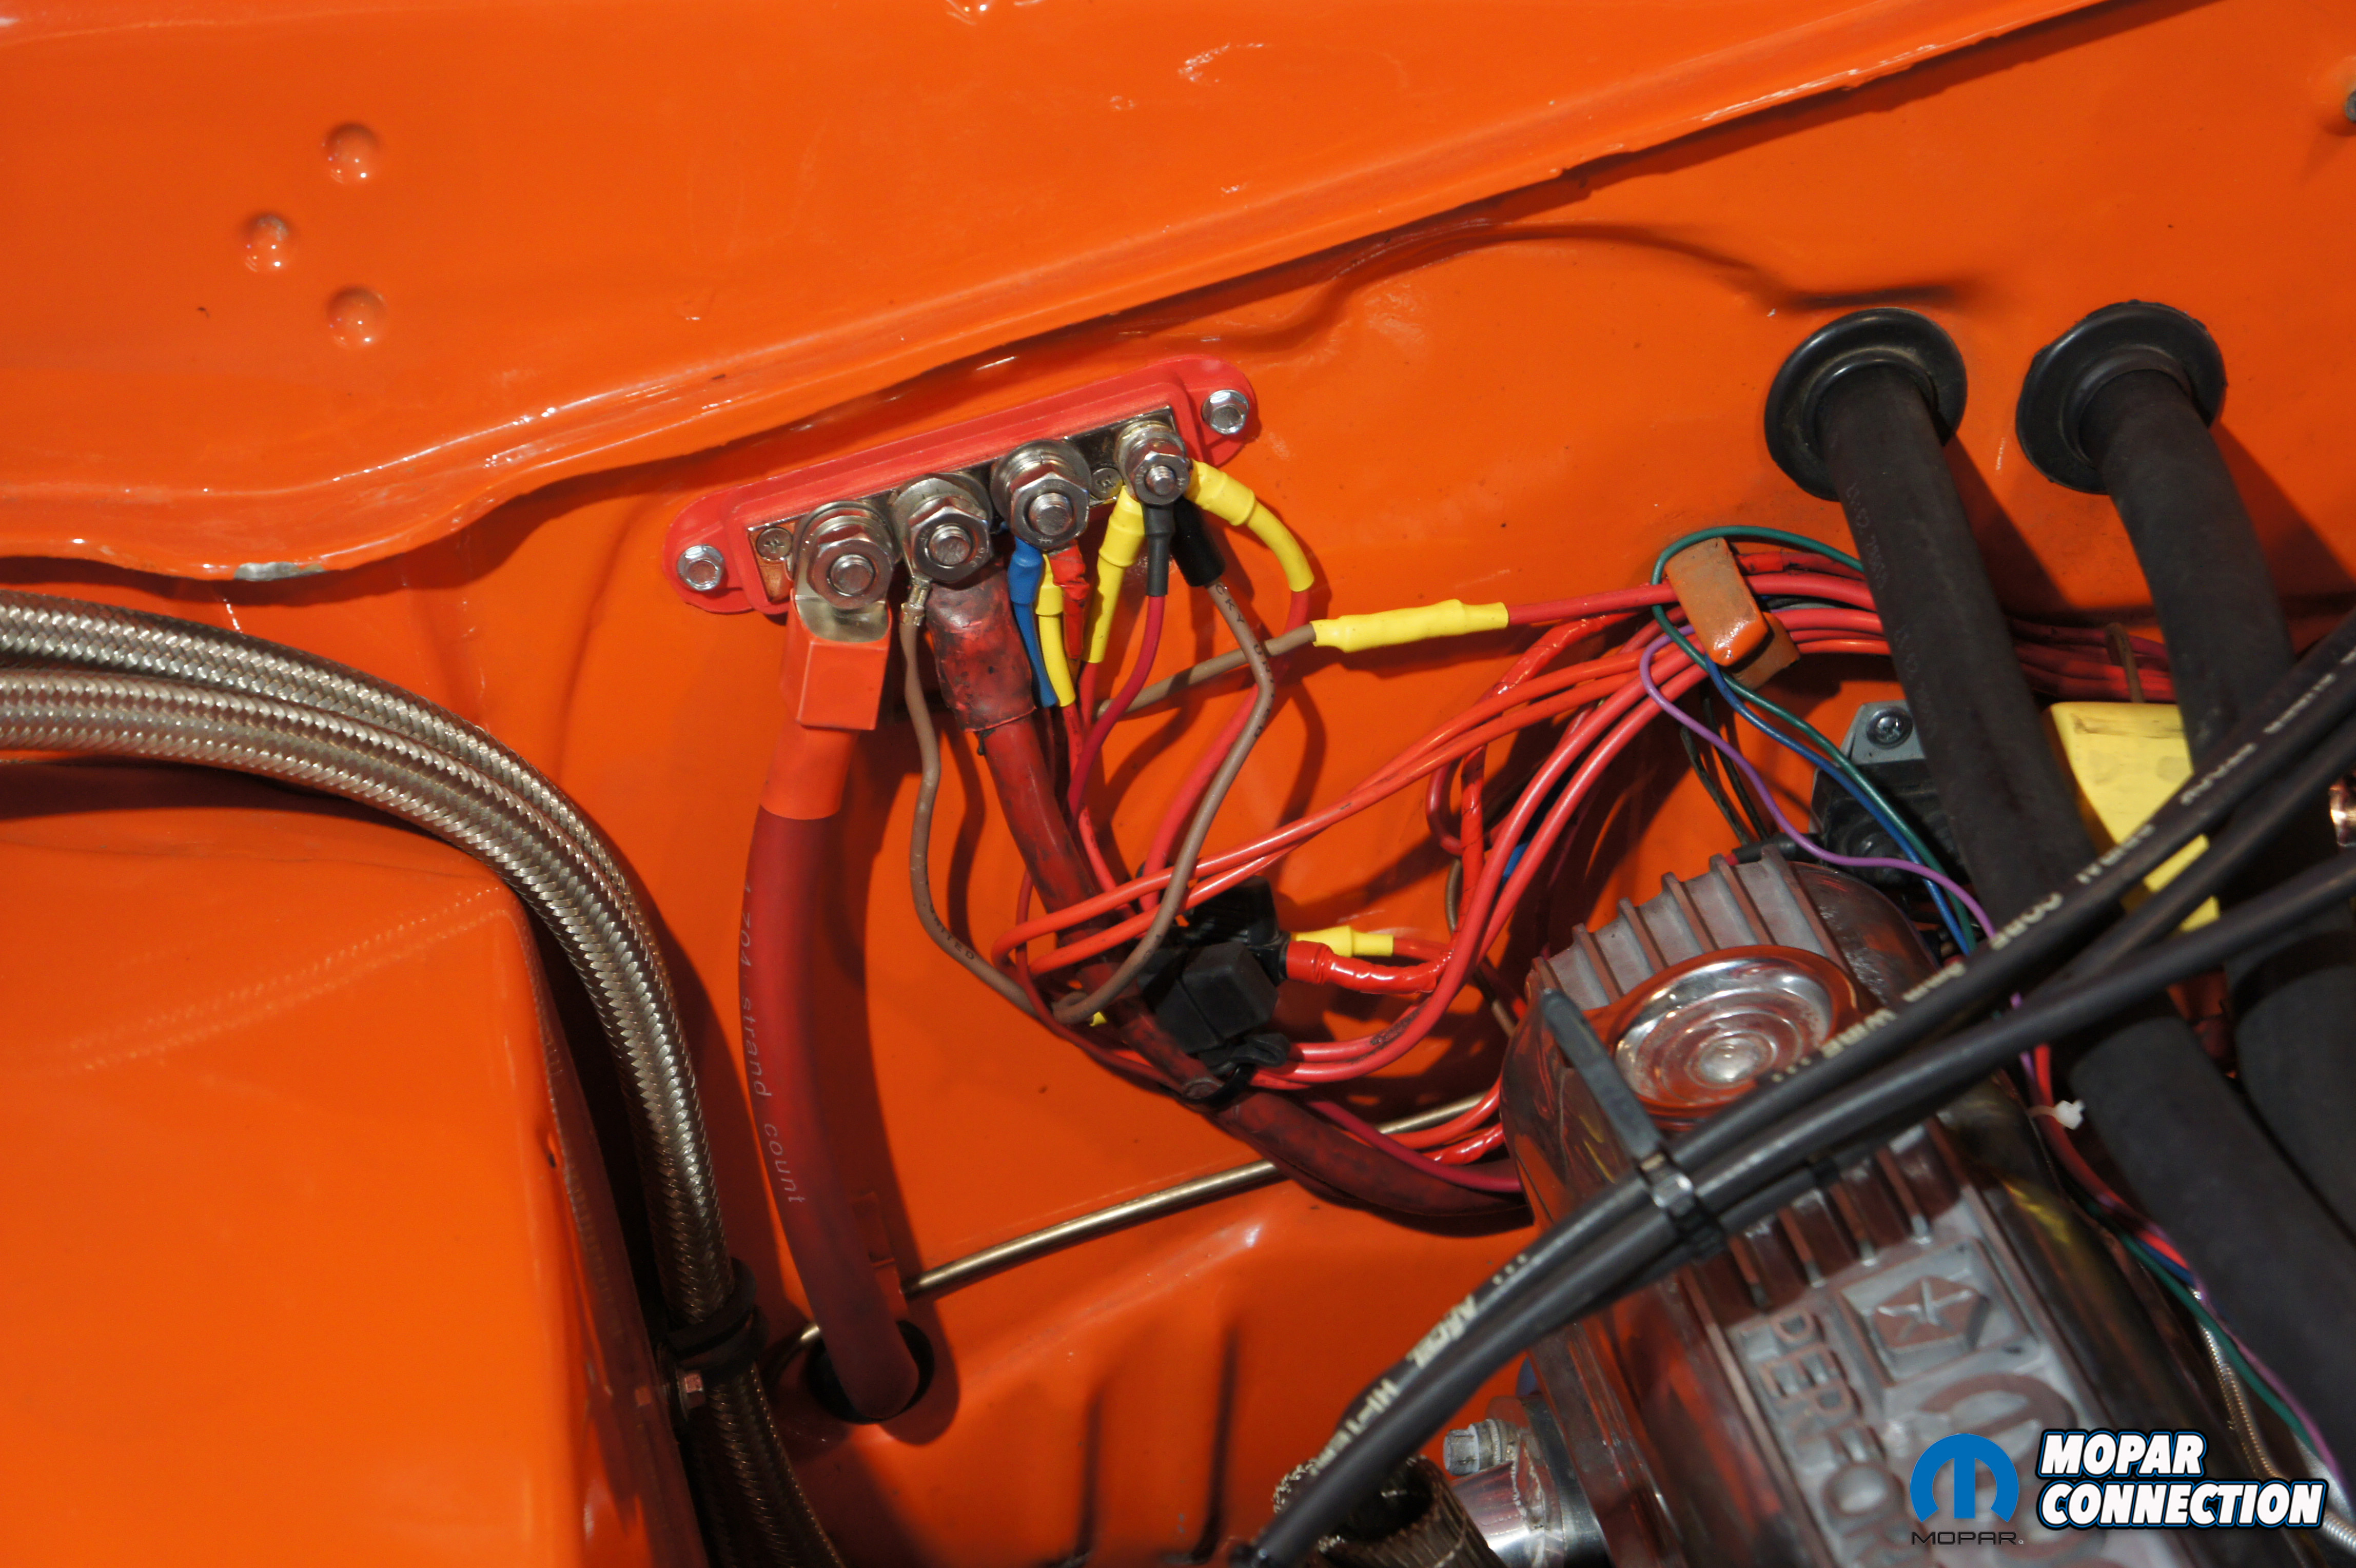 Mopar Race Car Wiring Diagram Experts Of Ho Switch Track Push Off How To Install A Battery Cut Relocating Your Rh Moparconnectionmagazine Com Chevy Basic